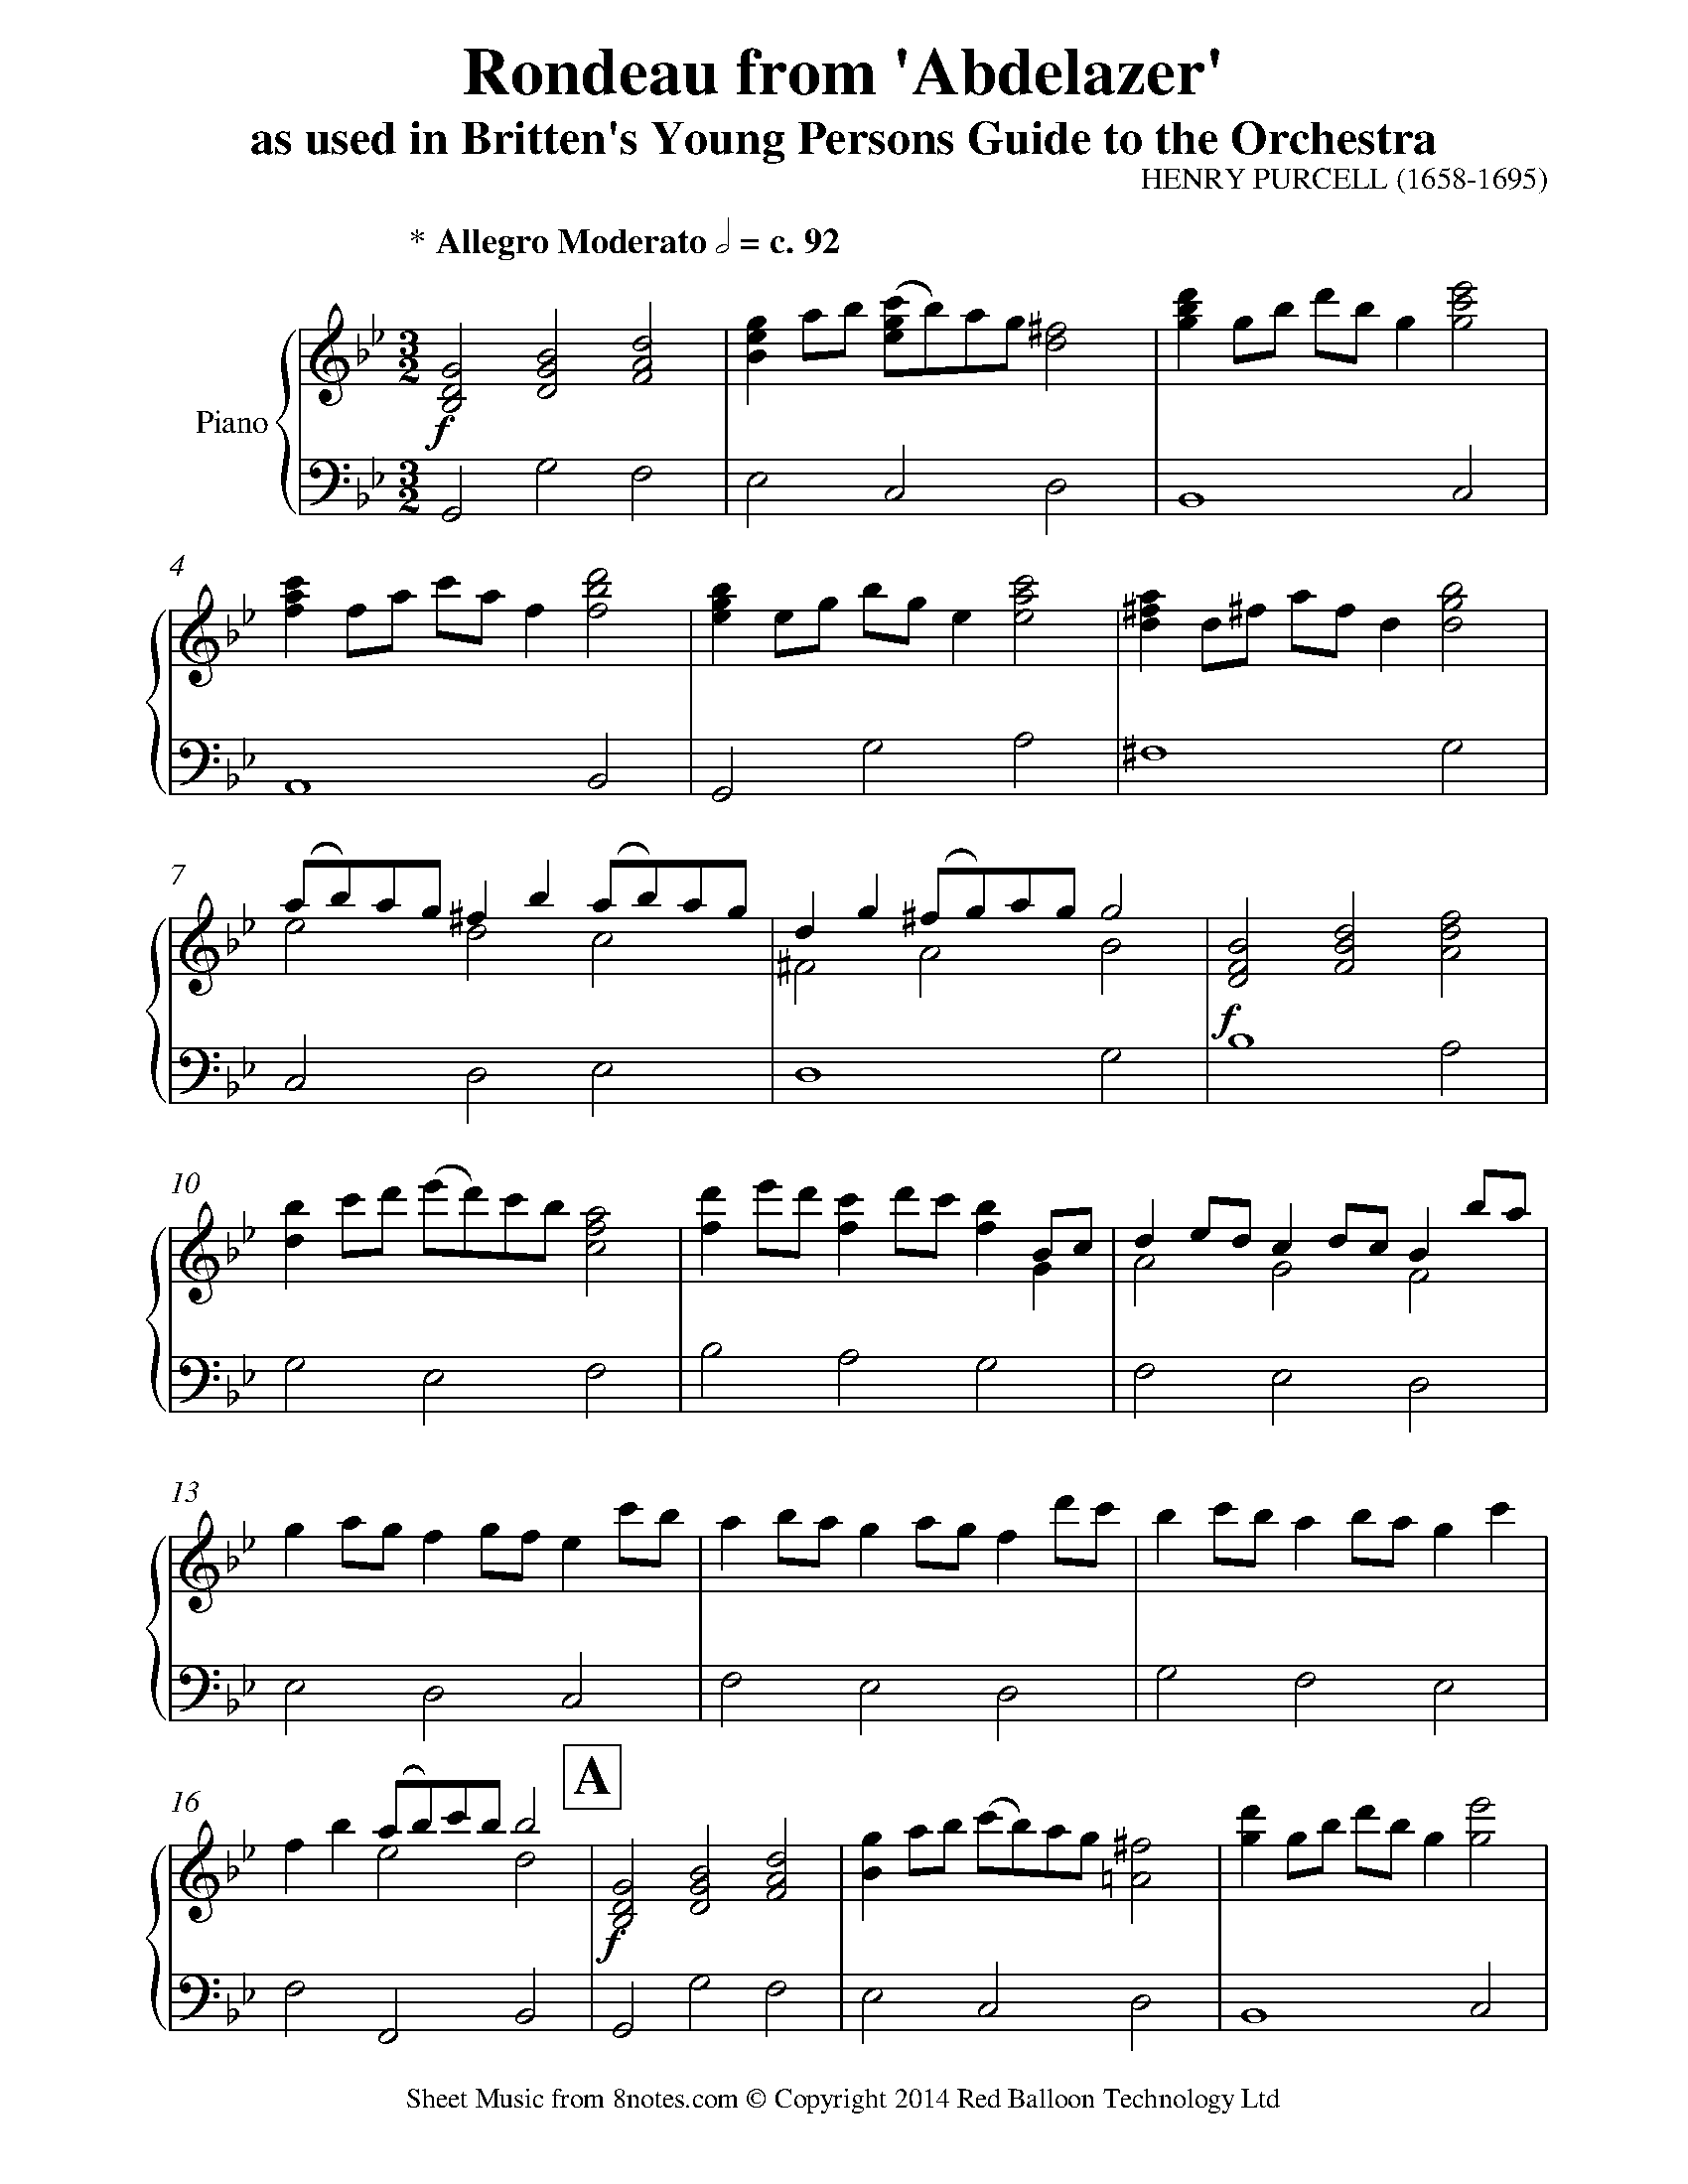 britten - young persons guide to the orchestra theme (purcells rondeau) sheet  music for piano - 8notes.com  8notes